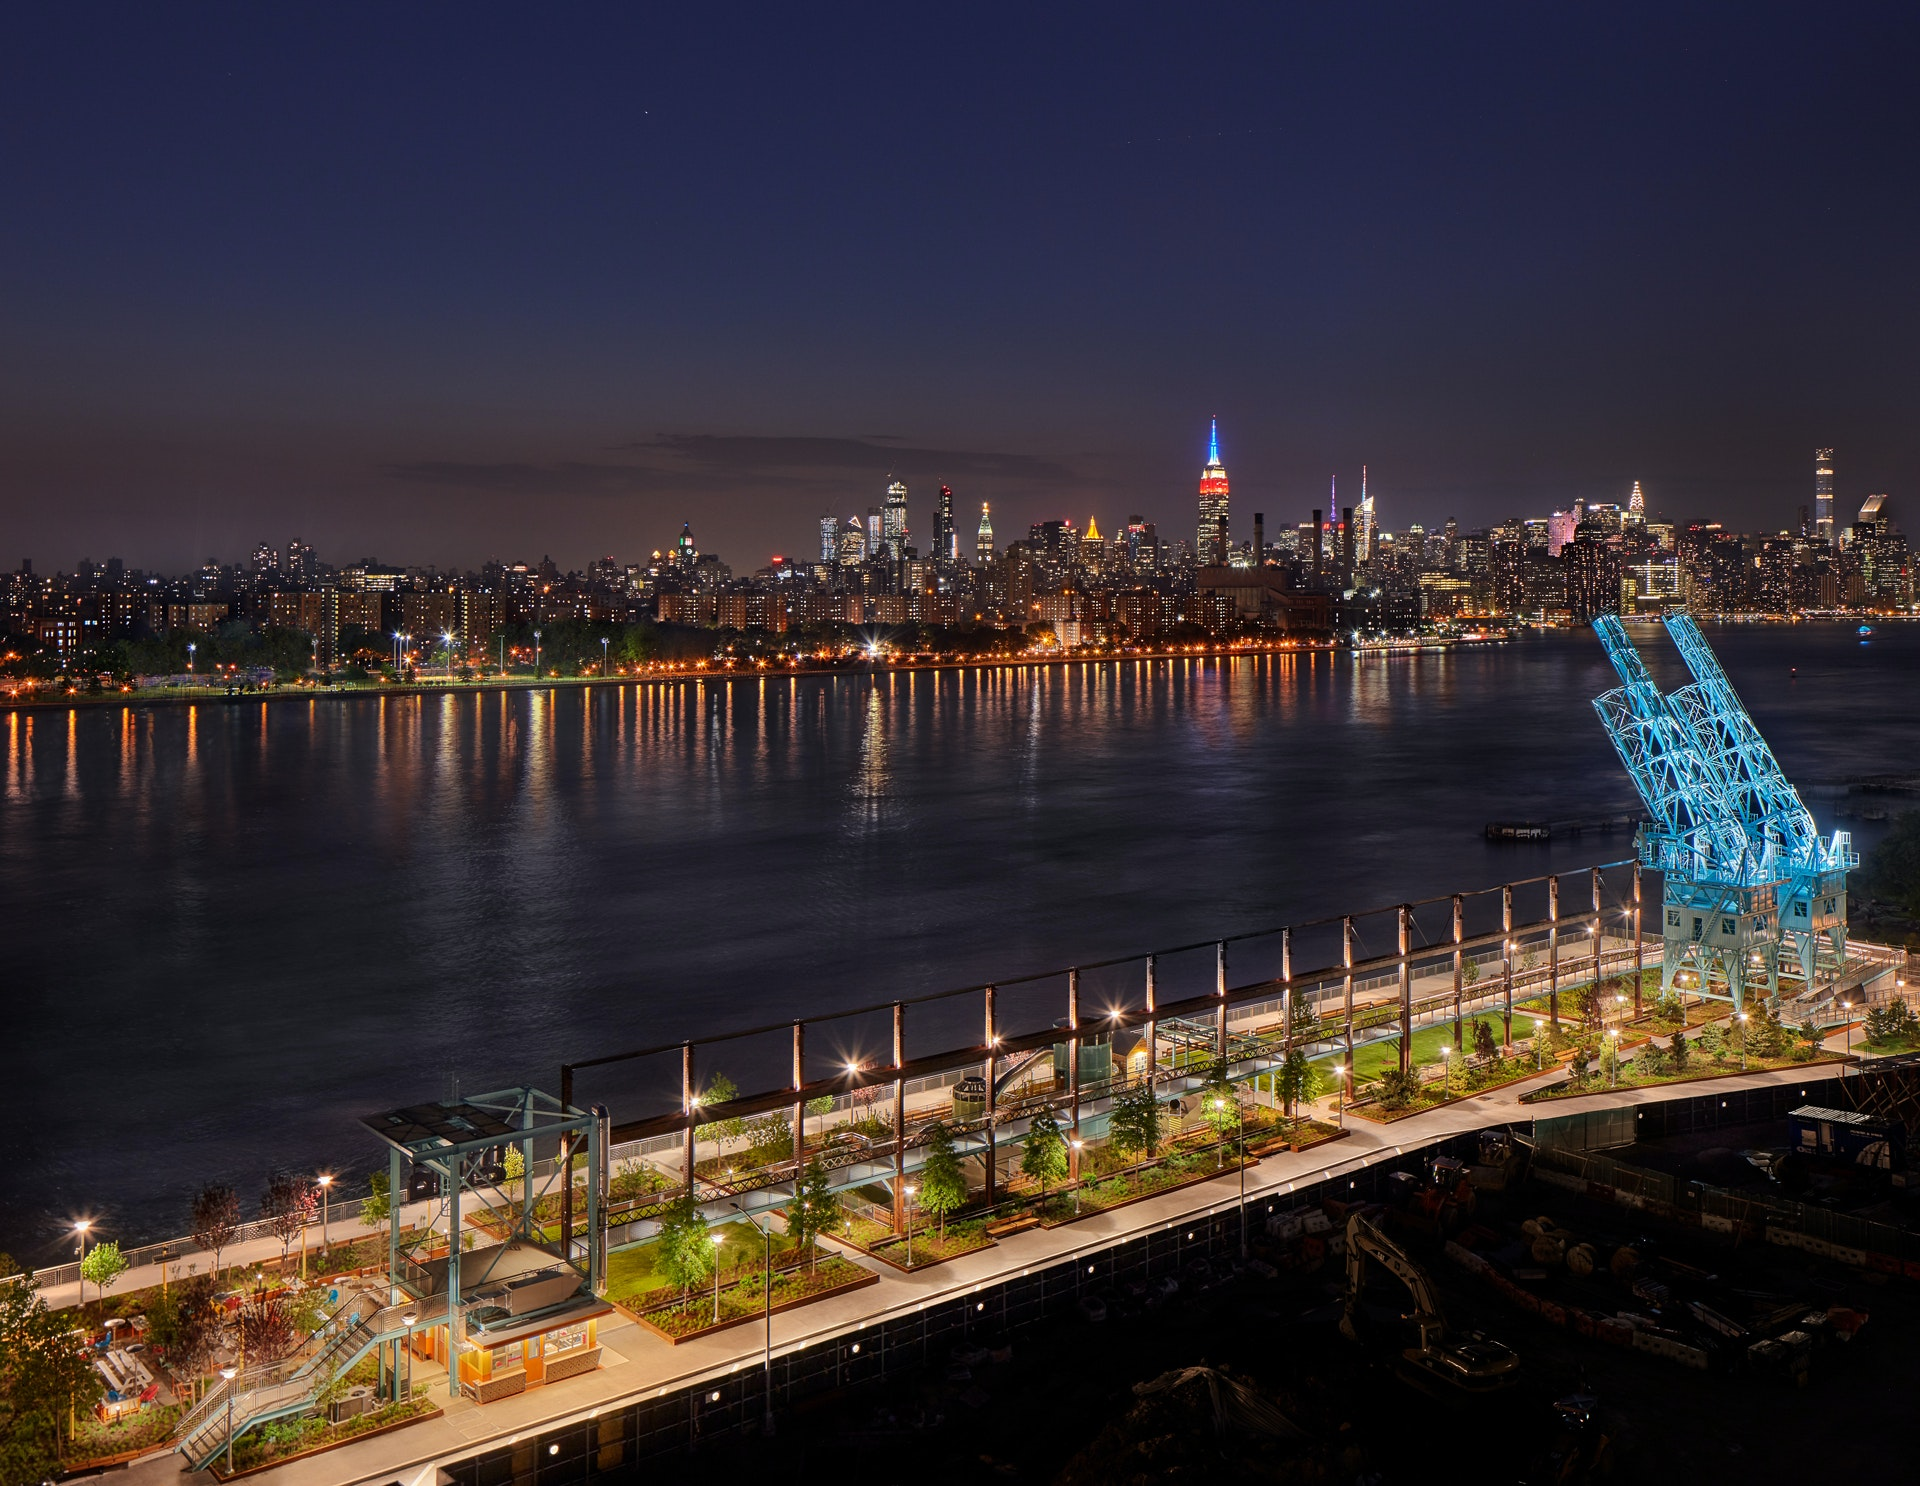 Domino Park opens to the public on Sunday, June 10.